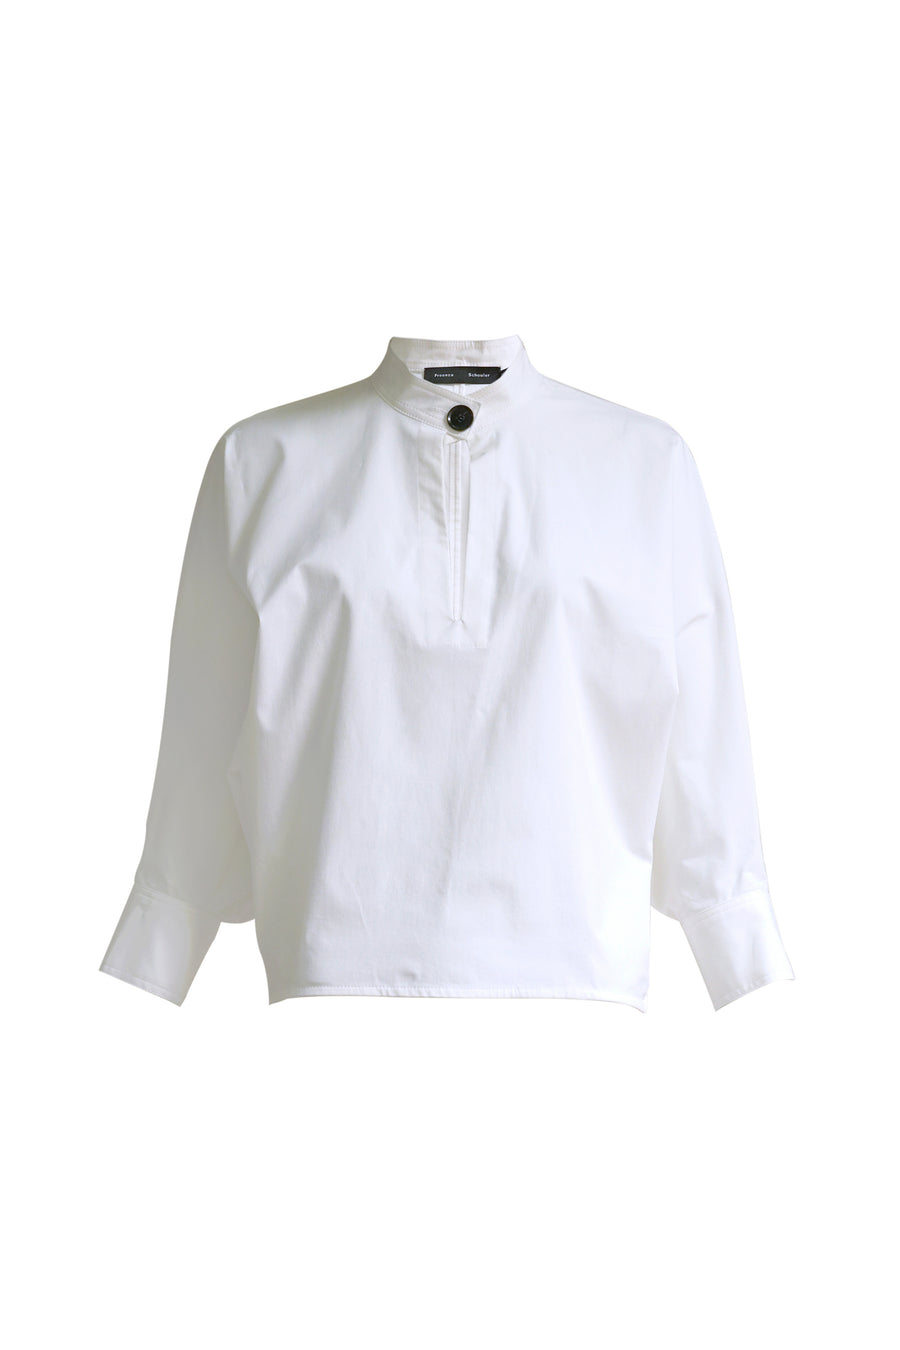 3/4 Sleeve Cotton Poplin Shirt with Banded Collar